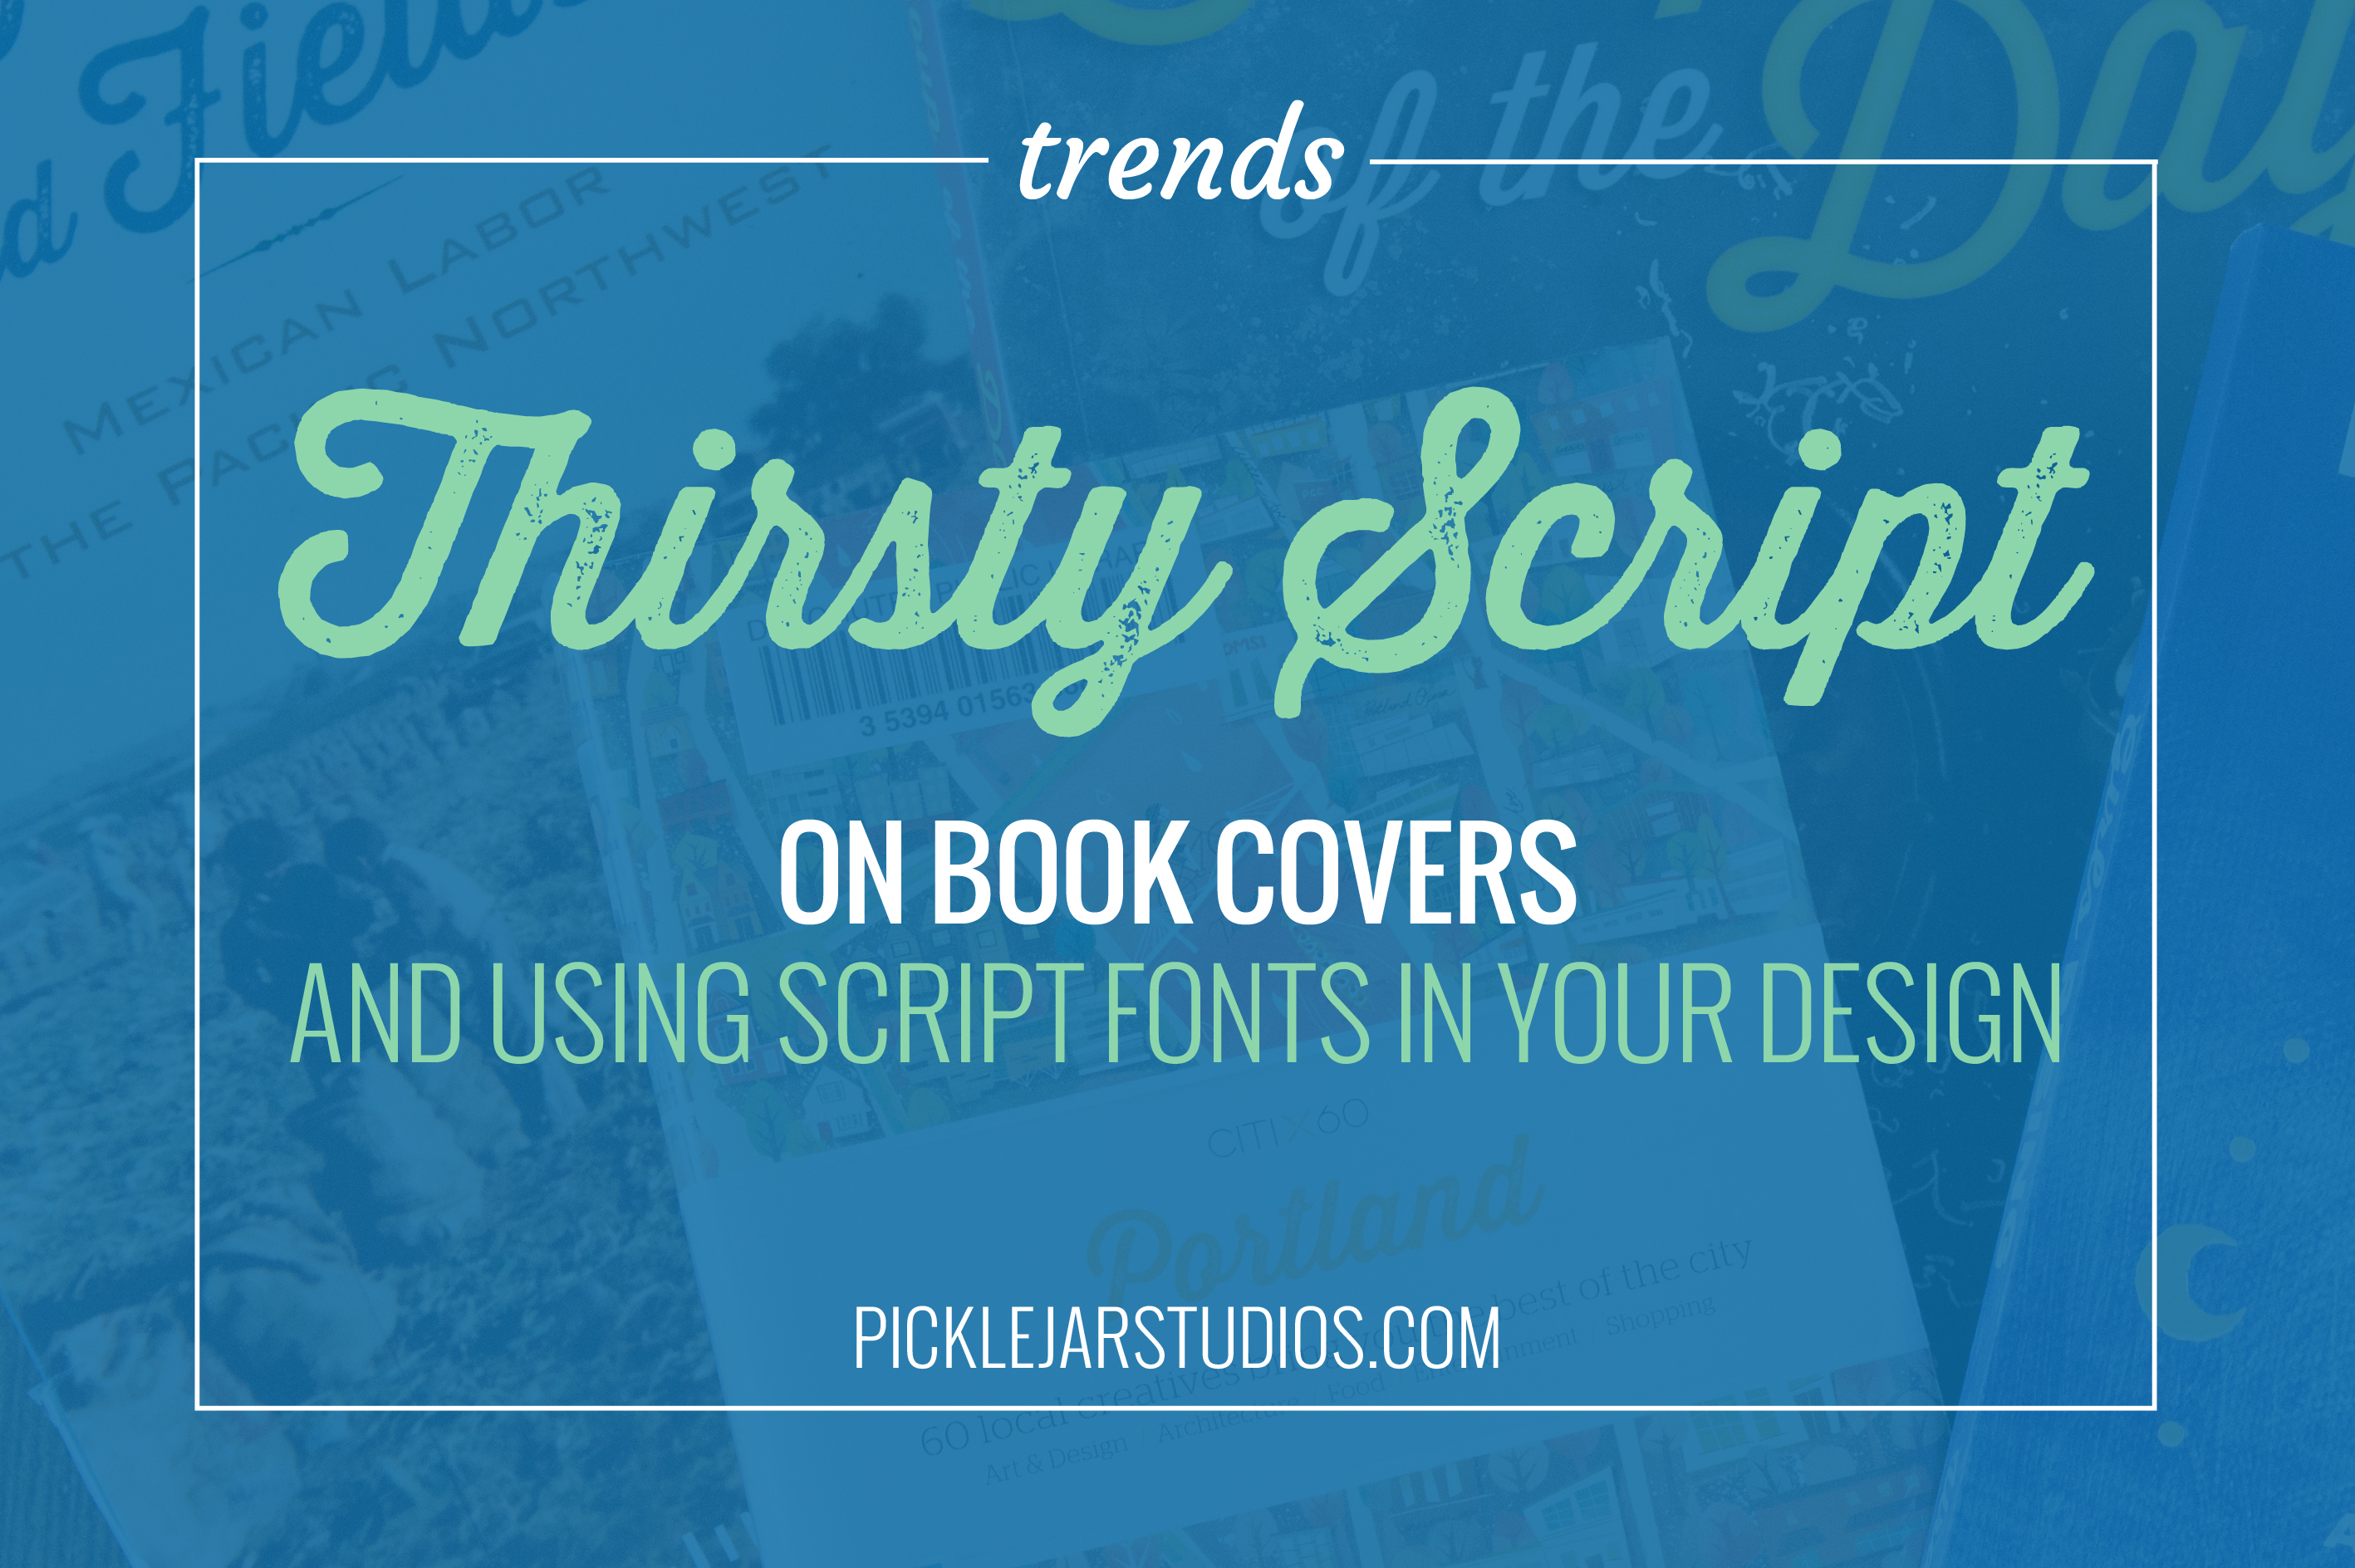 thirst script font on book covers book cover design blog post